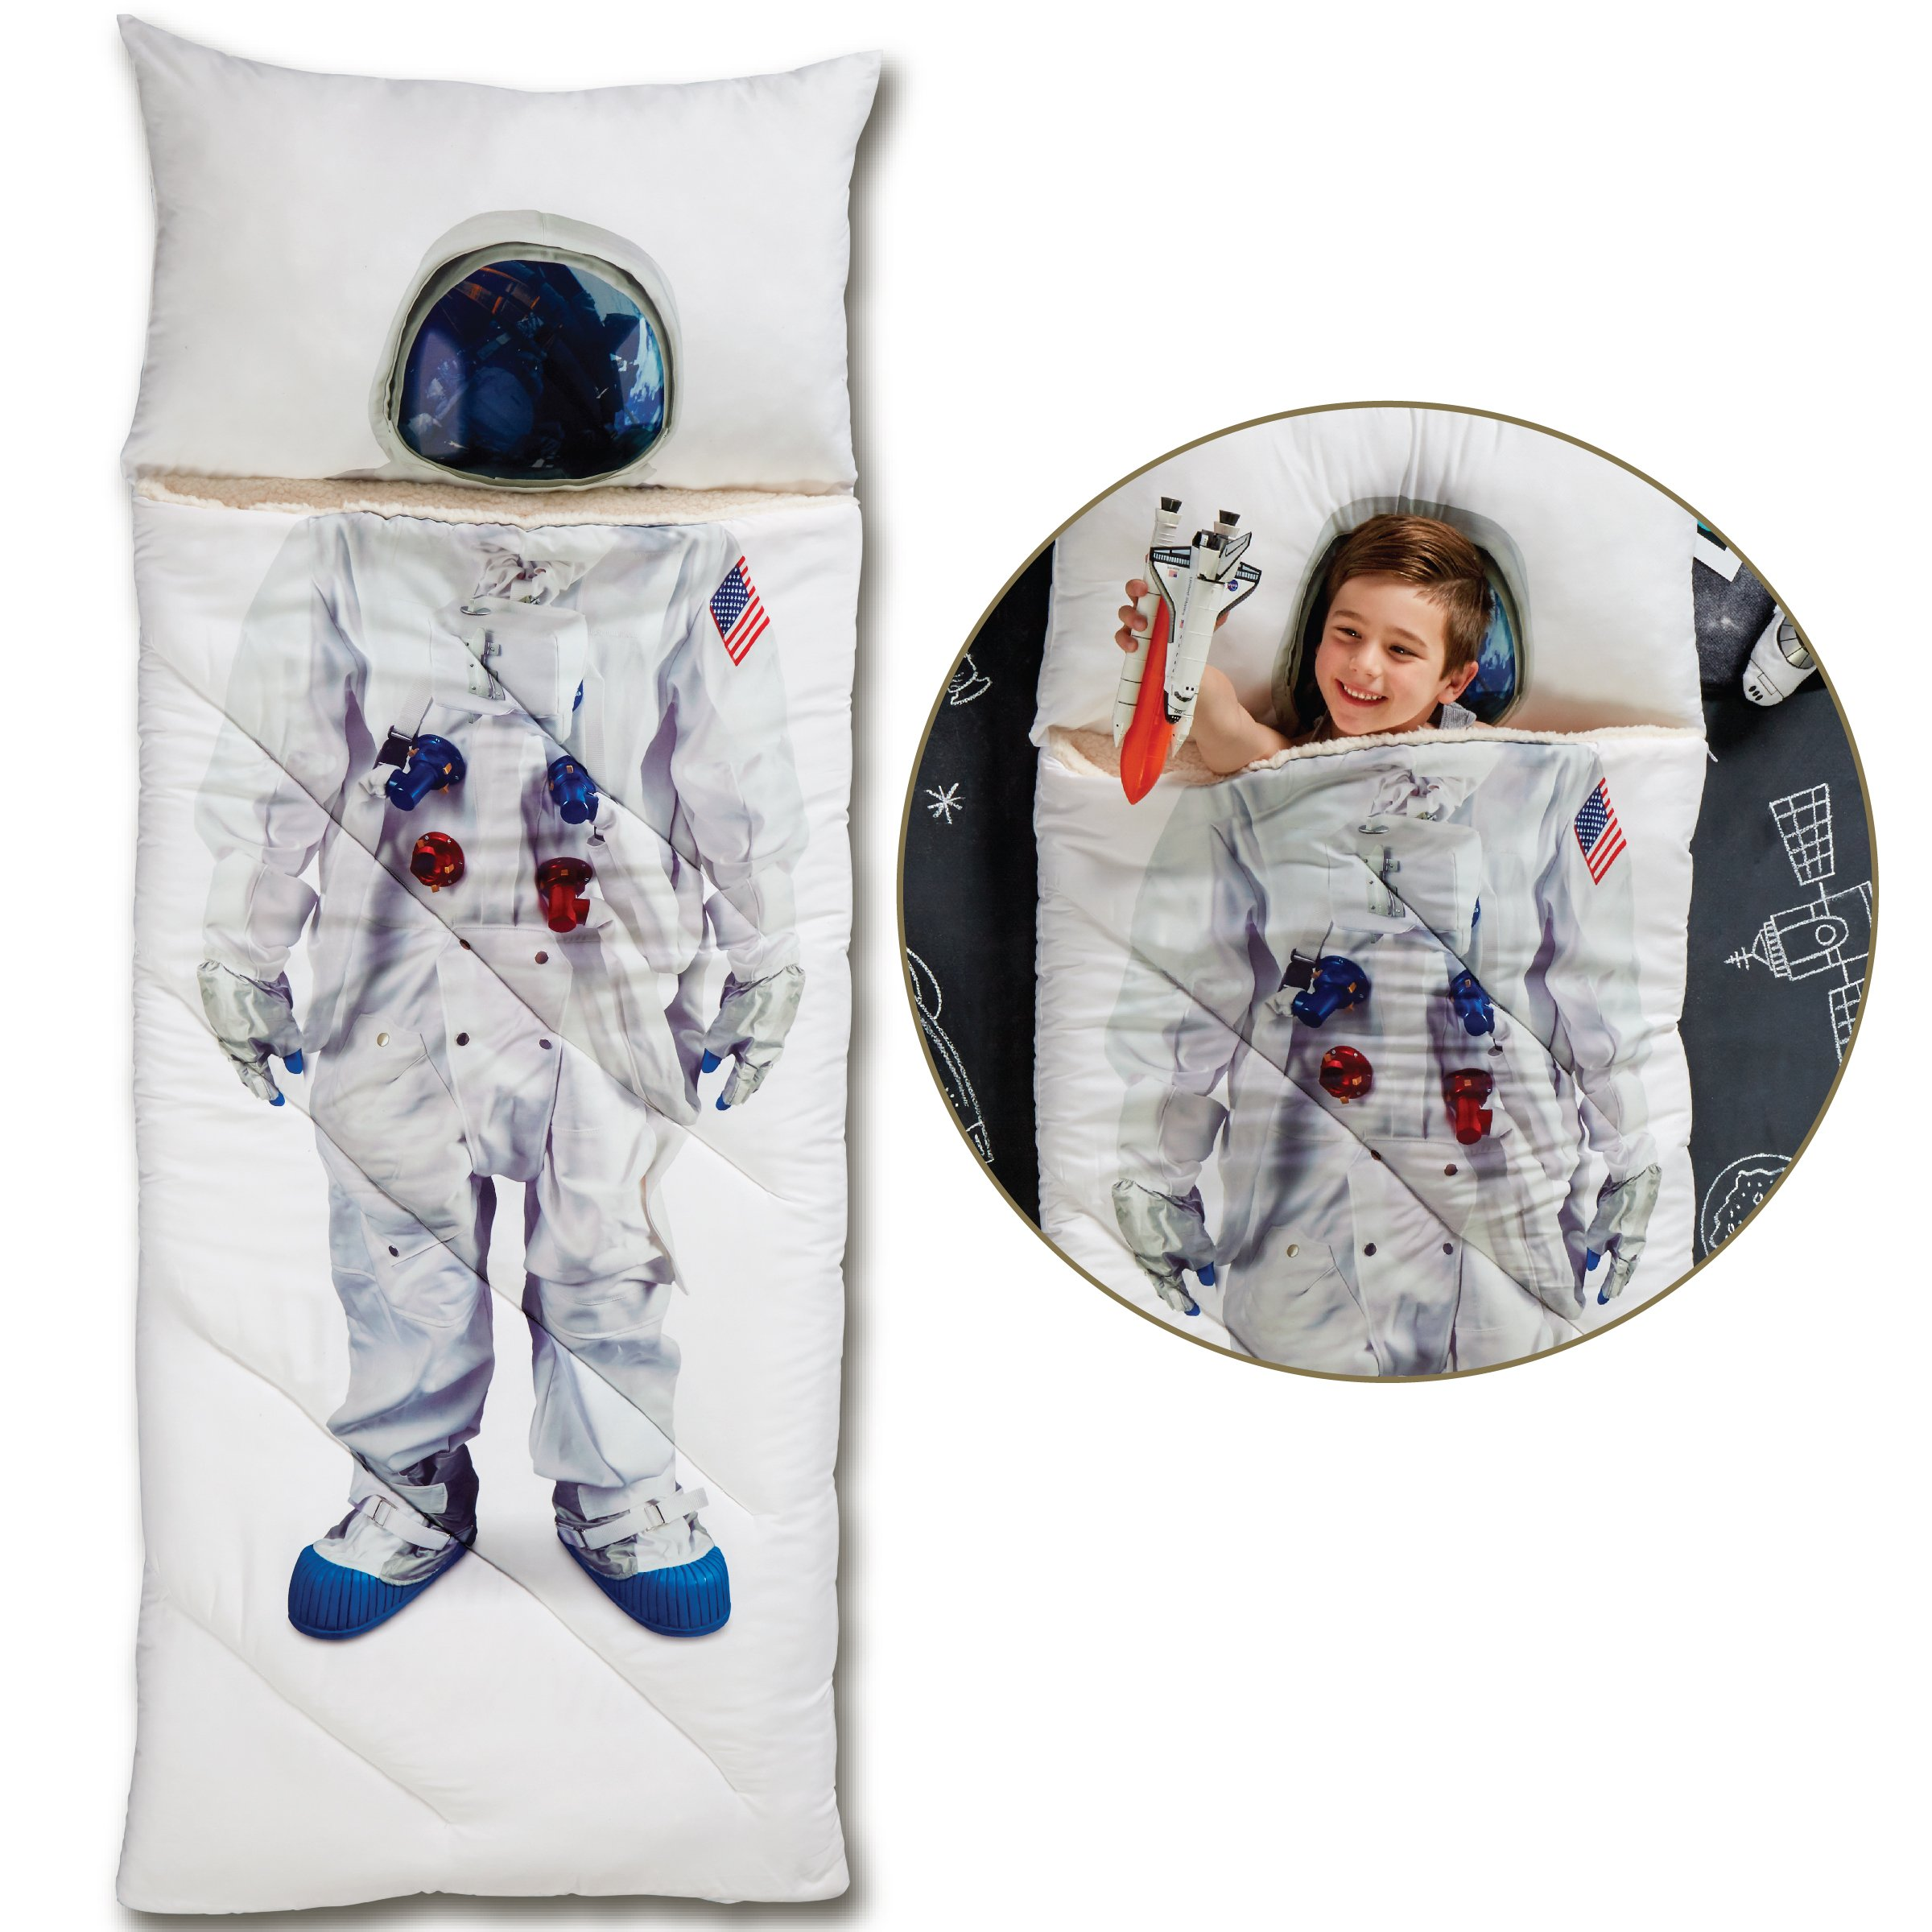 FAO Schwarz Imagine This Photo Printed Sleeping Bag for Children, Realistic Astronaut Design, Cozy Comfortable Sherpa Lining W/Integrated Pillow & Travel Straps, Full Size, Perfect for Sleepovers